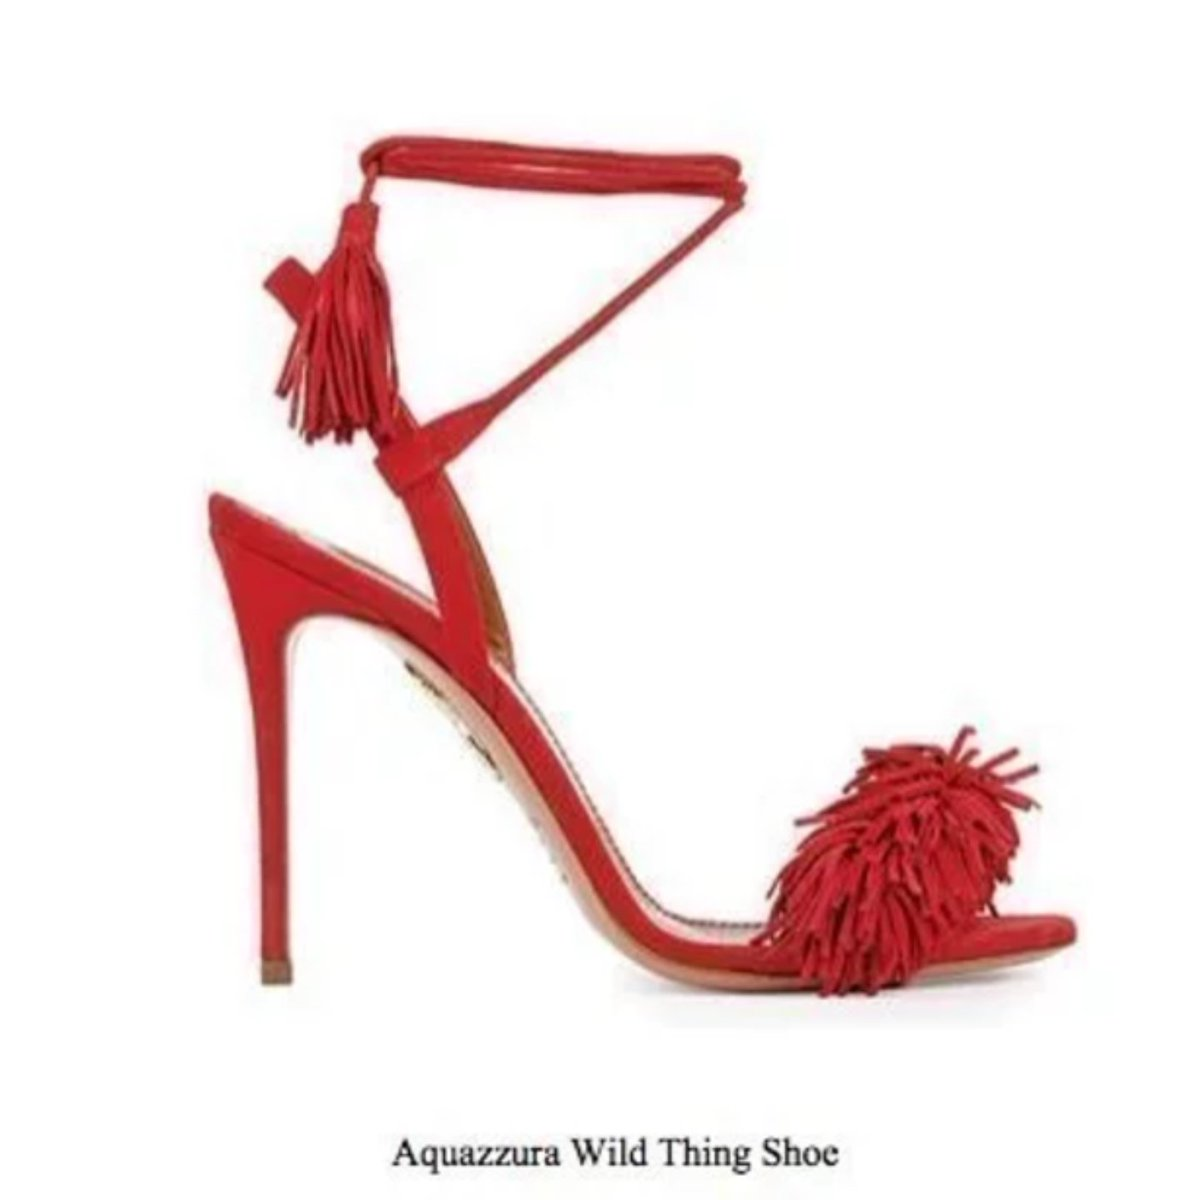 A judge ordered Ivanka Trump to answer questions over claims that she ripped off a shoe design https://t.co/Rl7nxK36Py